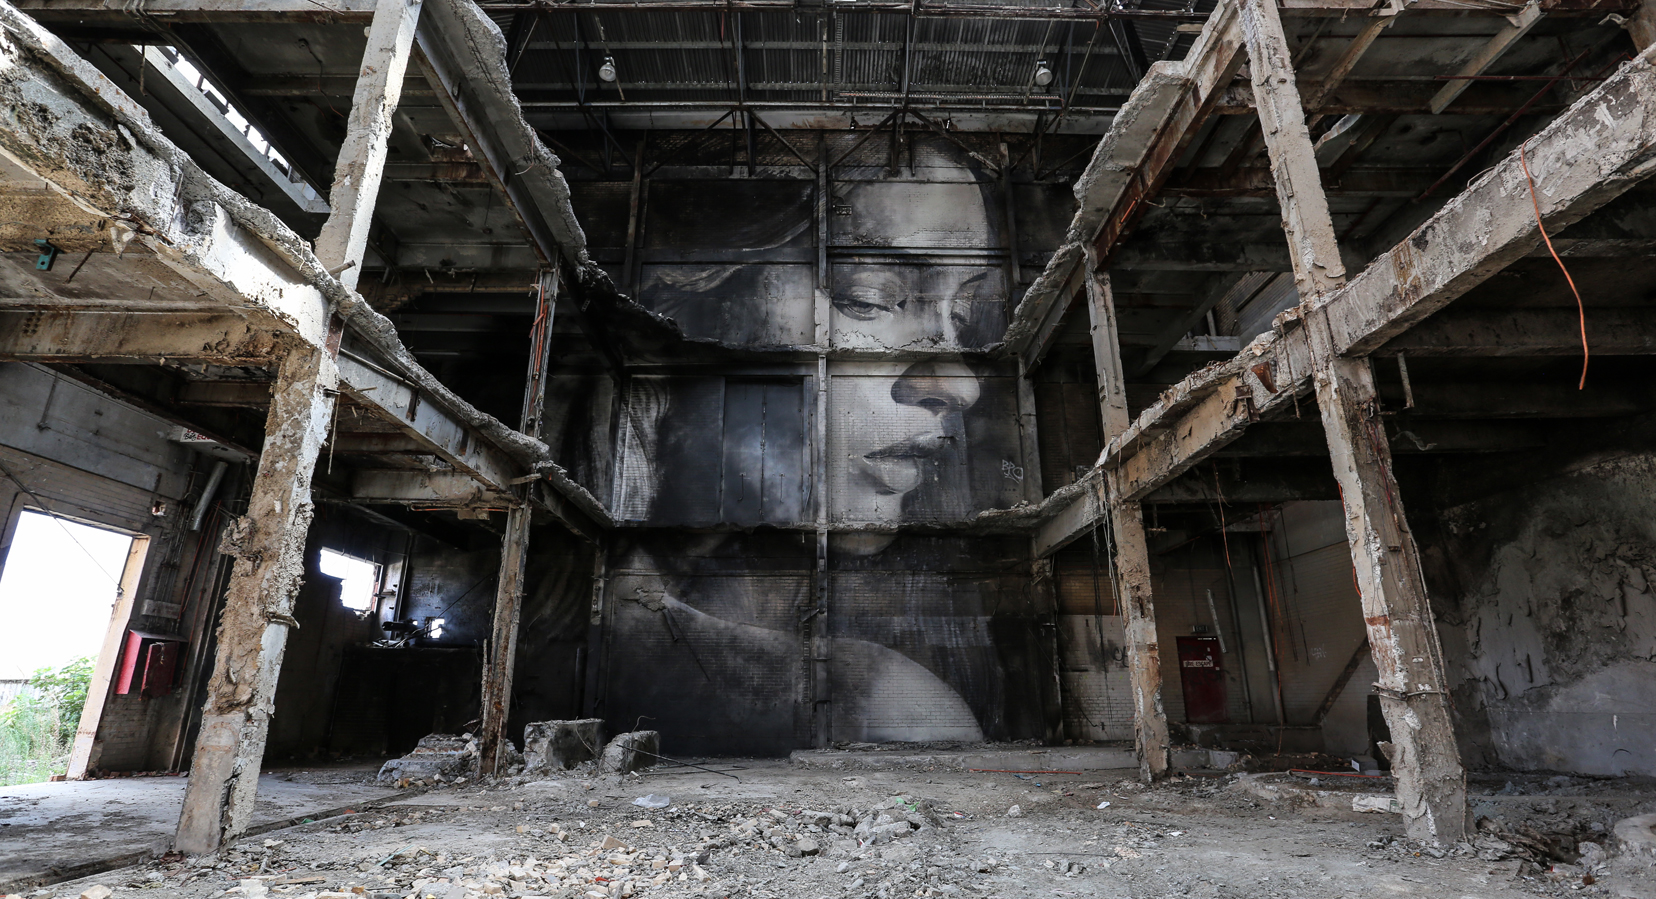 A Vision Amid Ruins: Artist Rone Paints Colossal Portraits of Women in Paper Mill